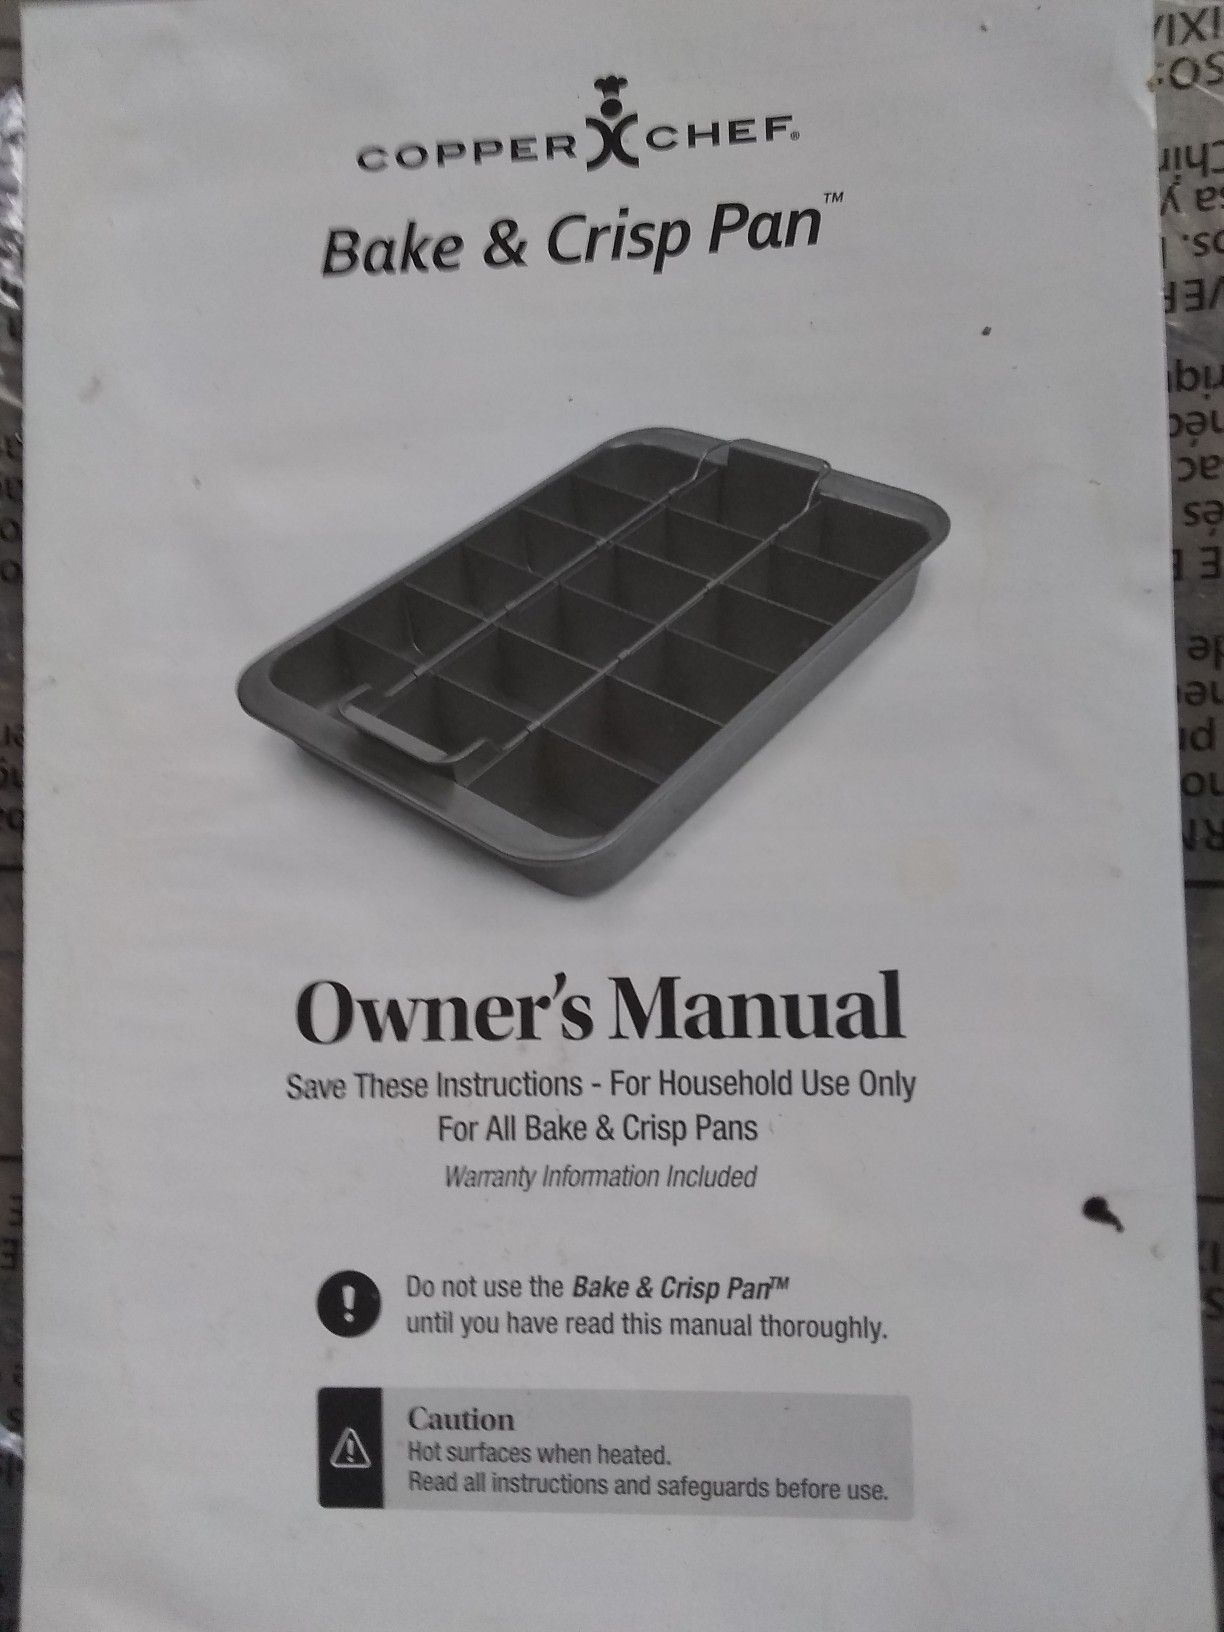 Copper chef bake and crisp pan